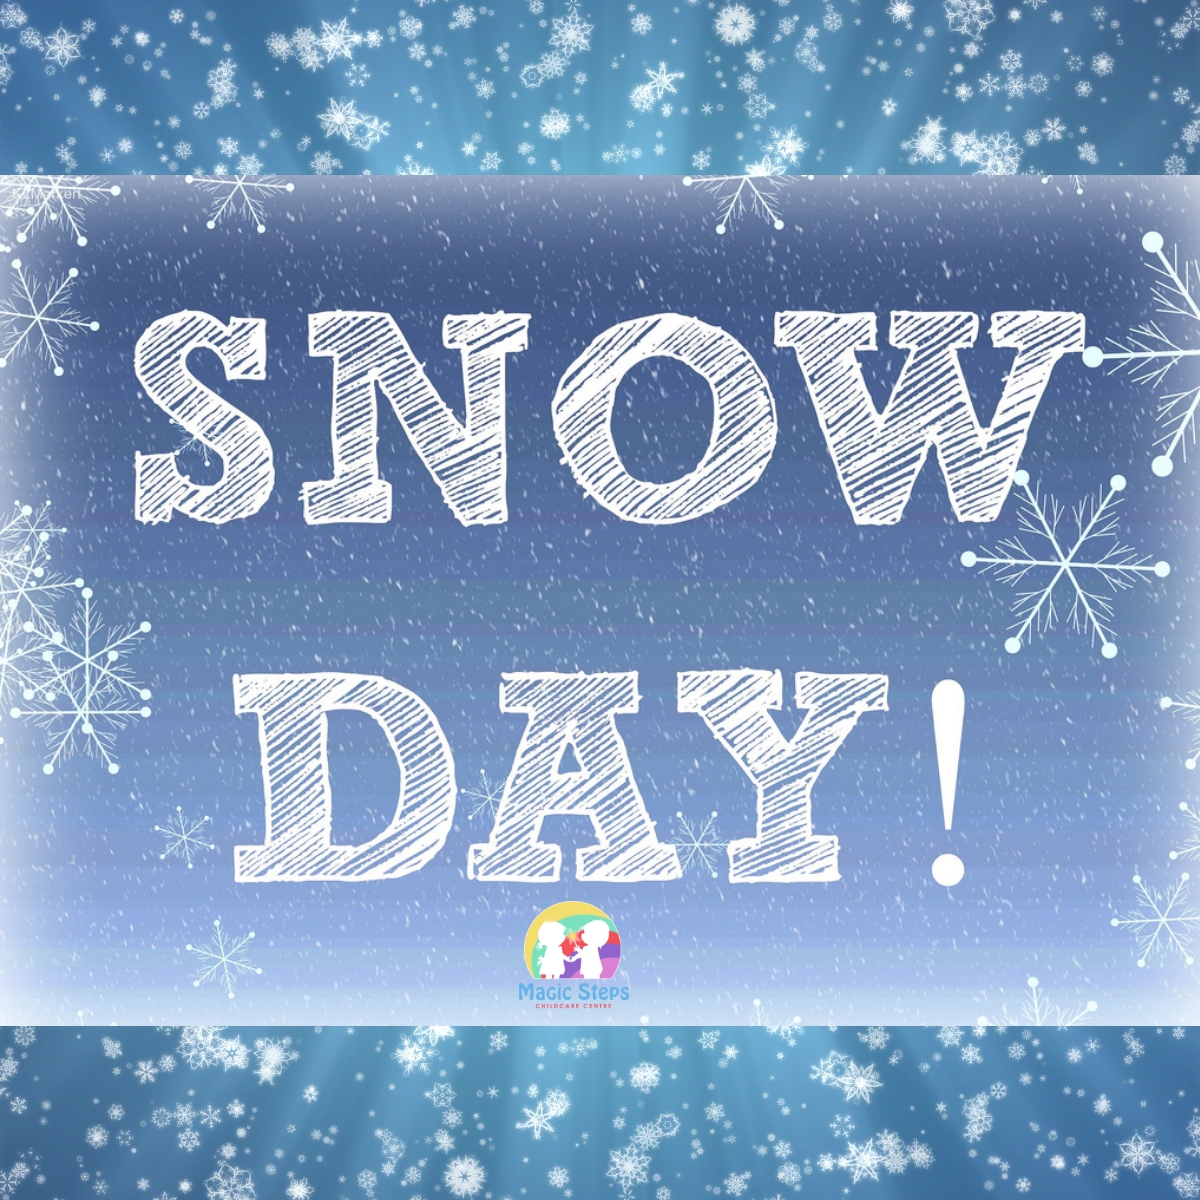 Snow Day at Magic Steps- Wednesday 20th January